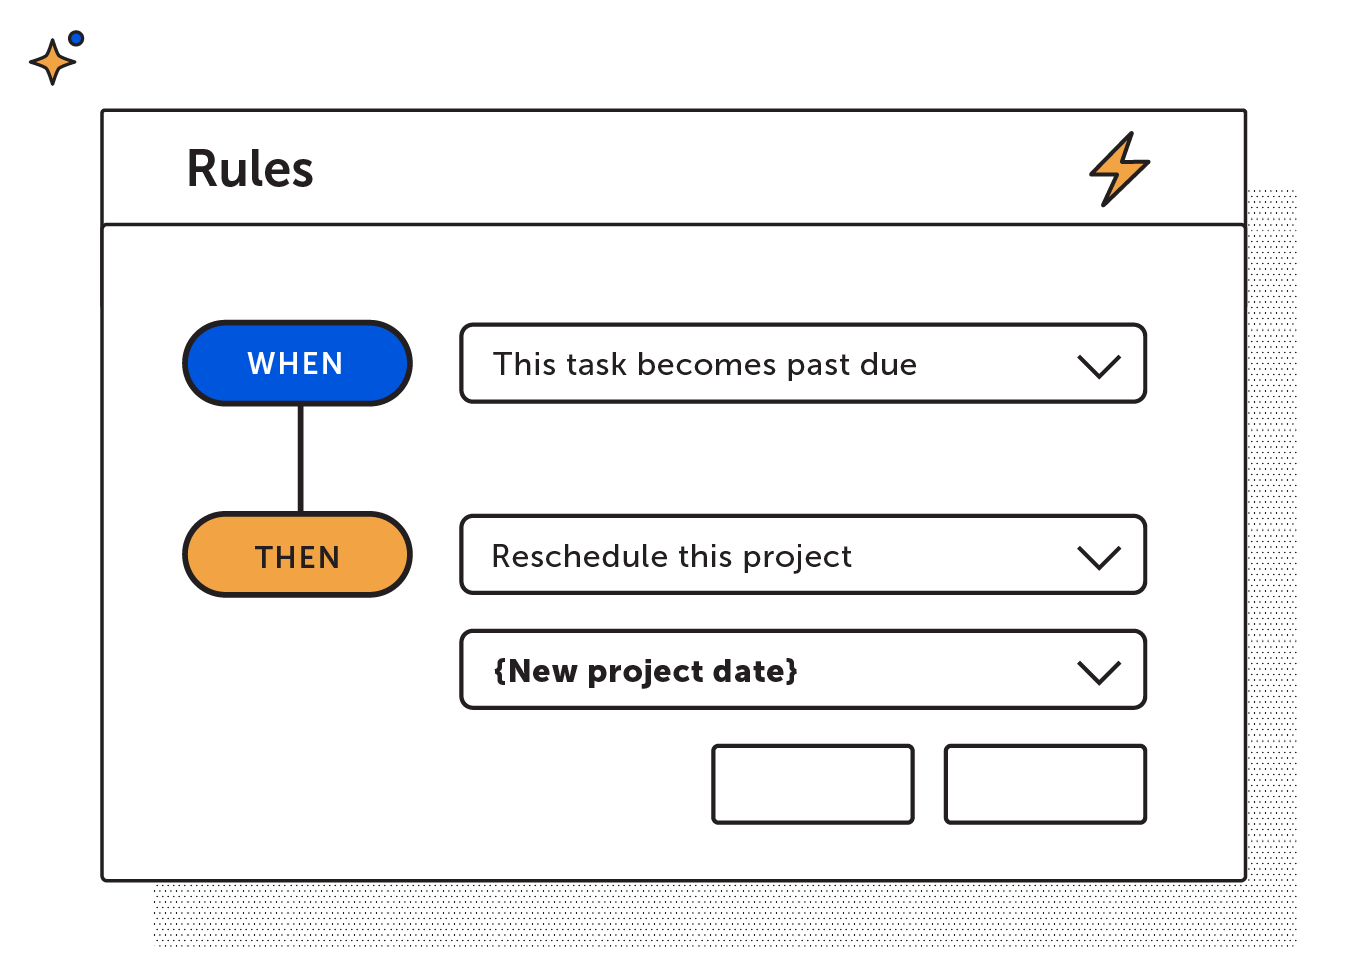 Reschedule project task rule